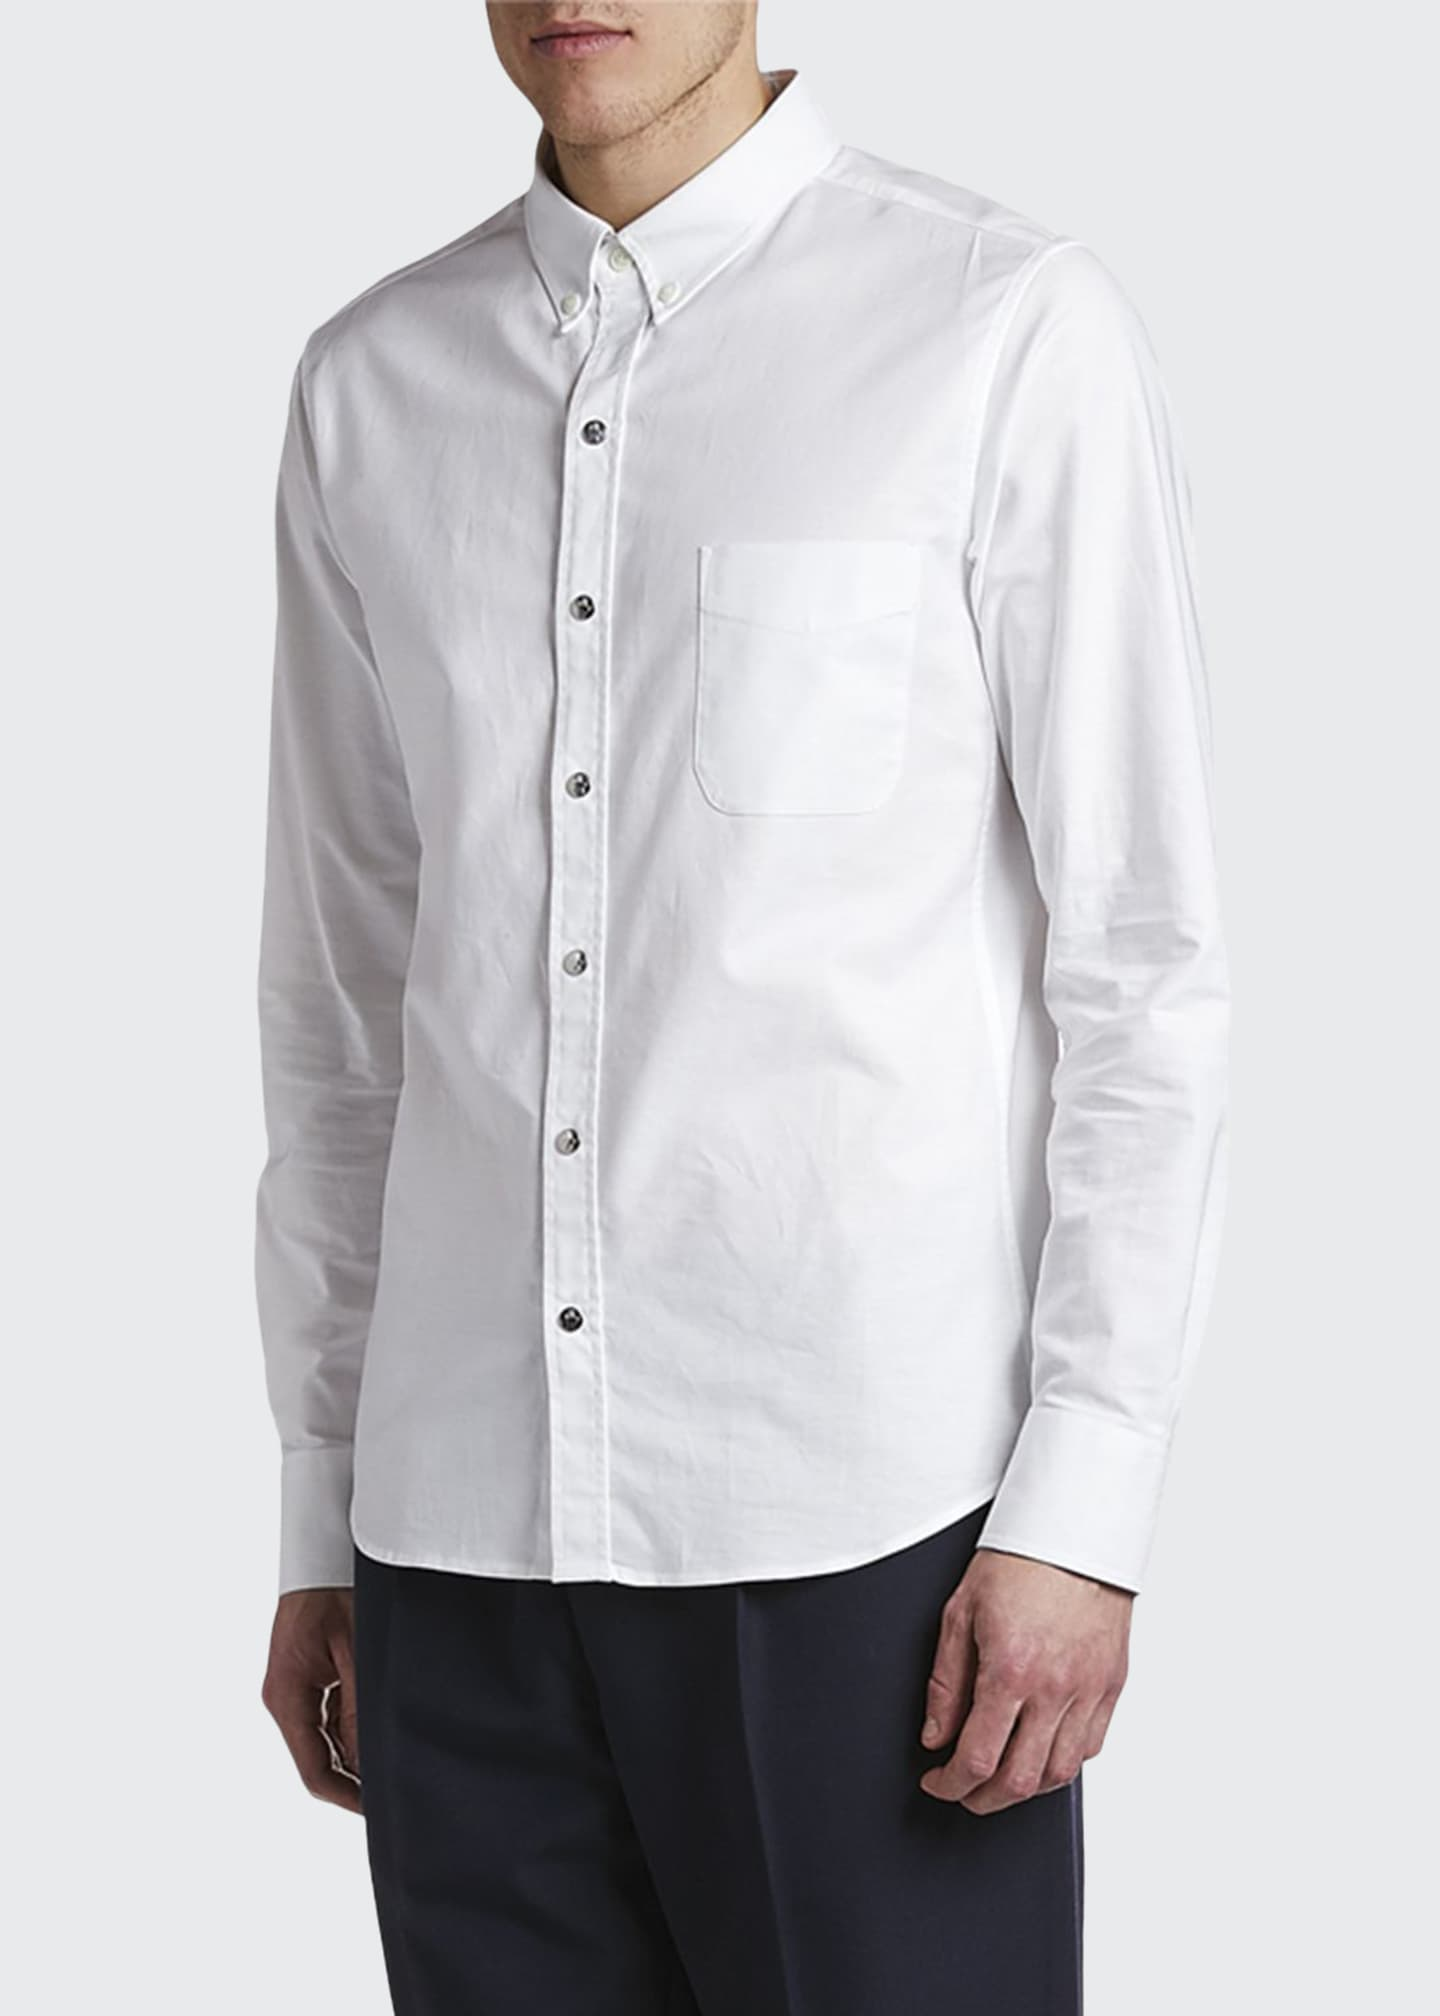 Moncler Men's Solid Oxford Sport Shirt with Snaps